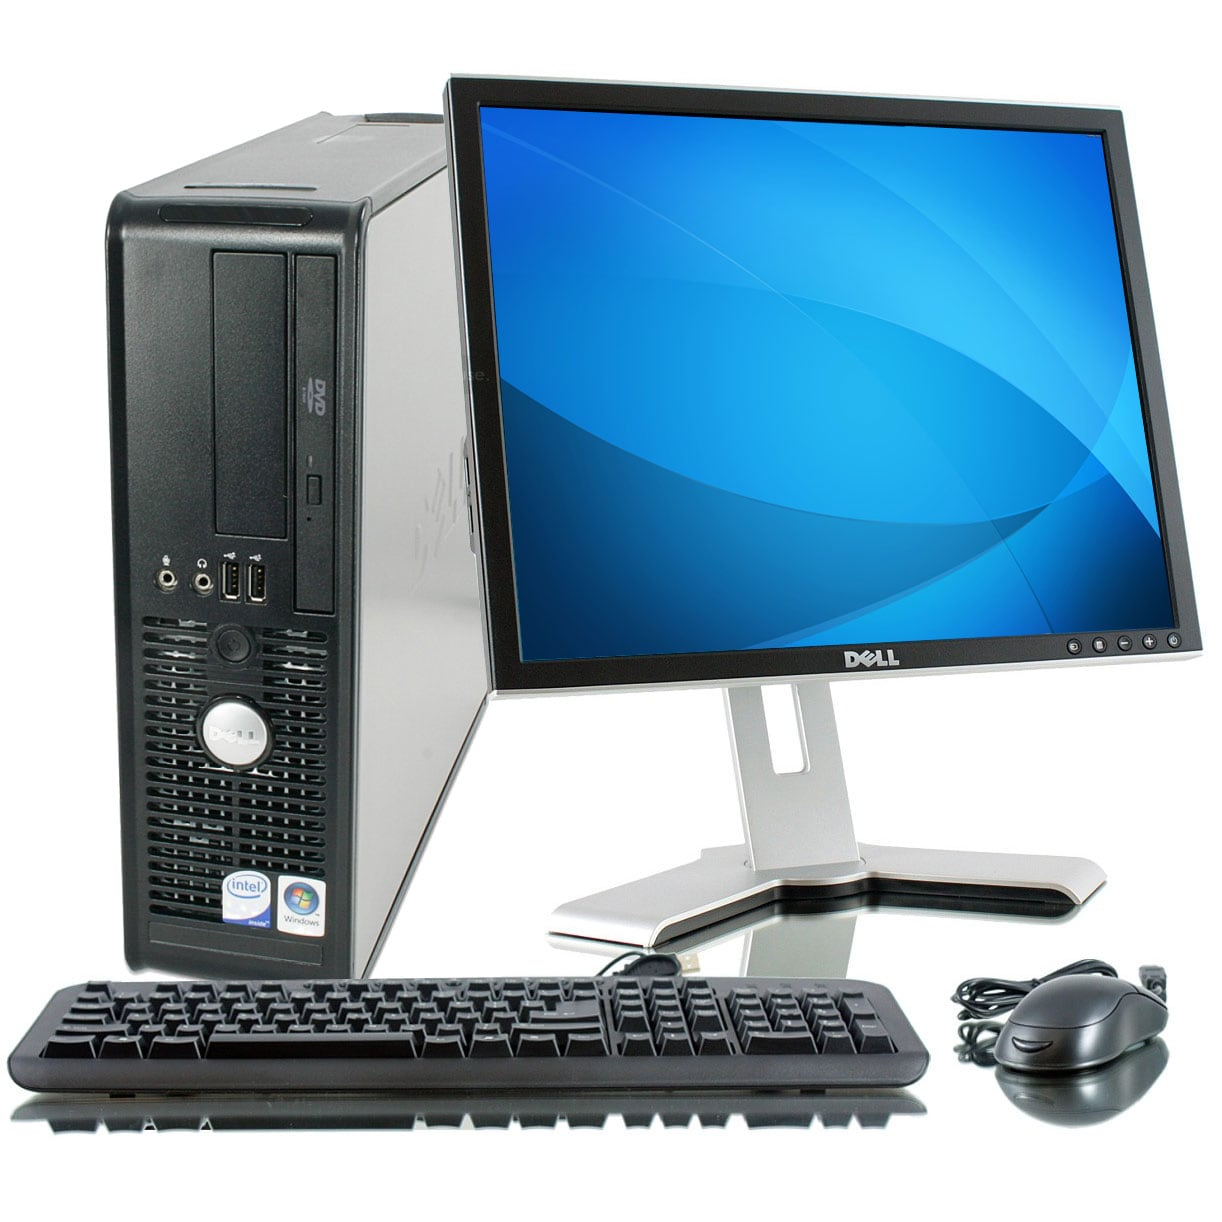 Desktop computer deals are widely available for brand-new or refurbished models that, given their size, offer even more than a typical laptop. Staples® carries a wide selection of laptops, tablets, and desktops. Find computer deals from leading manufacturers, such as Dell™, HP®, and Lenovo™.